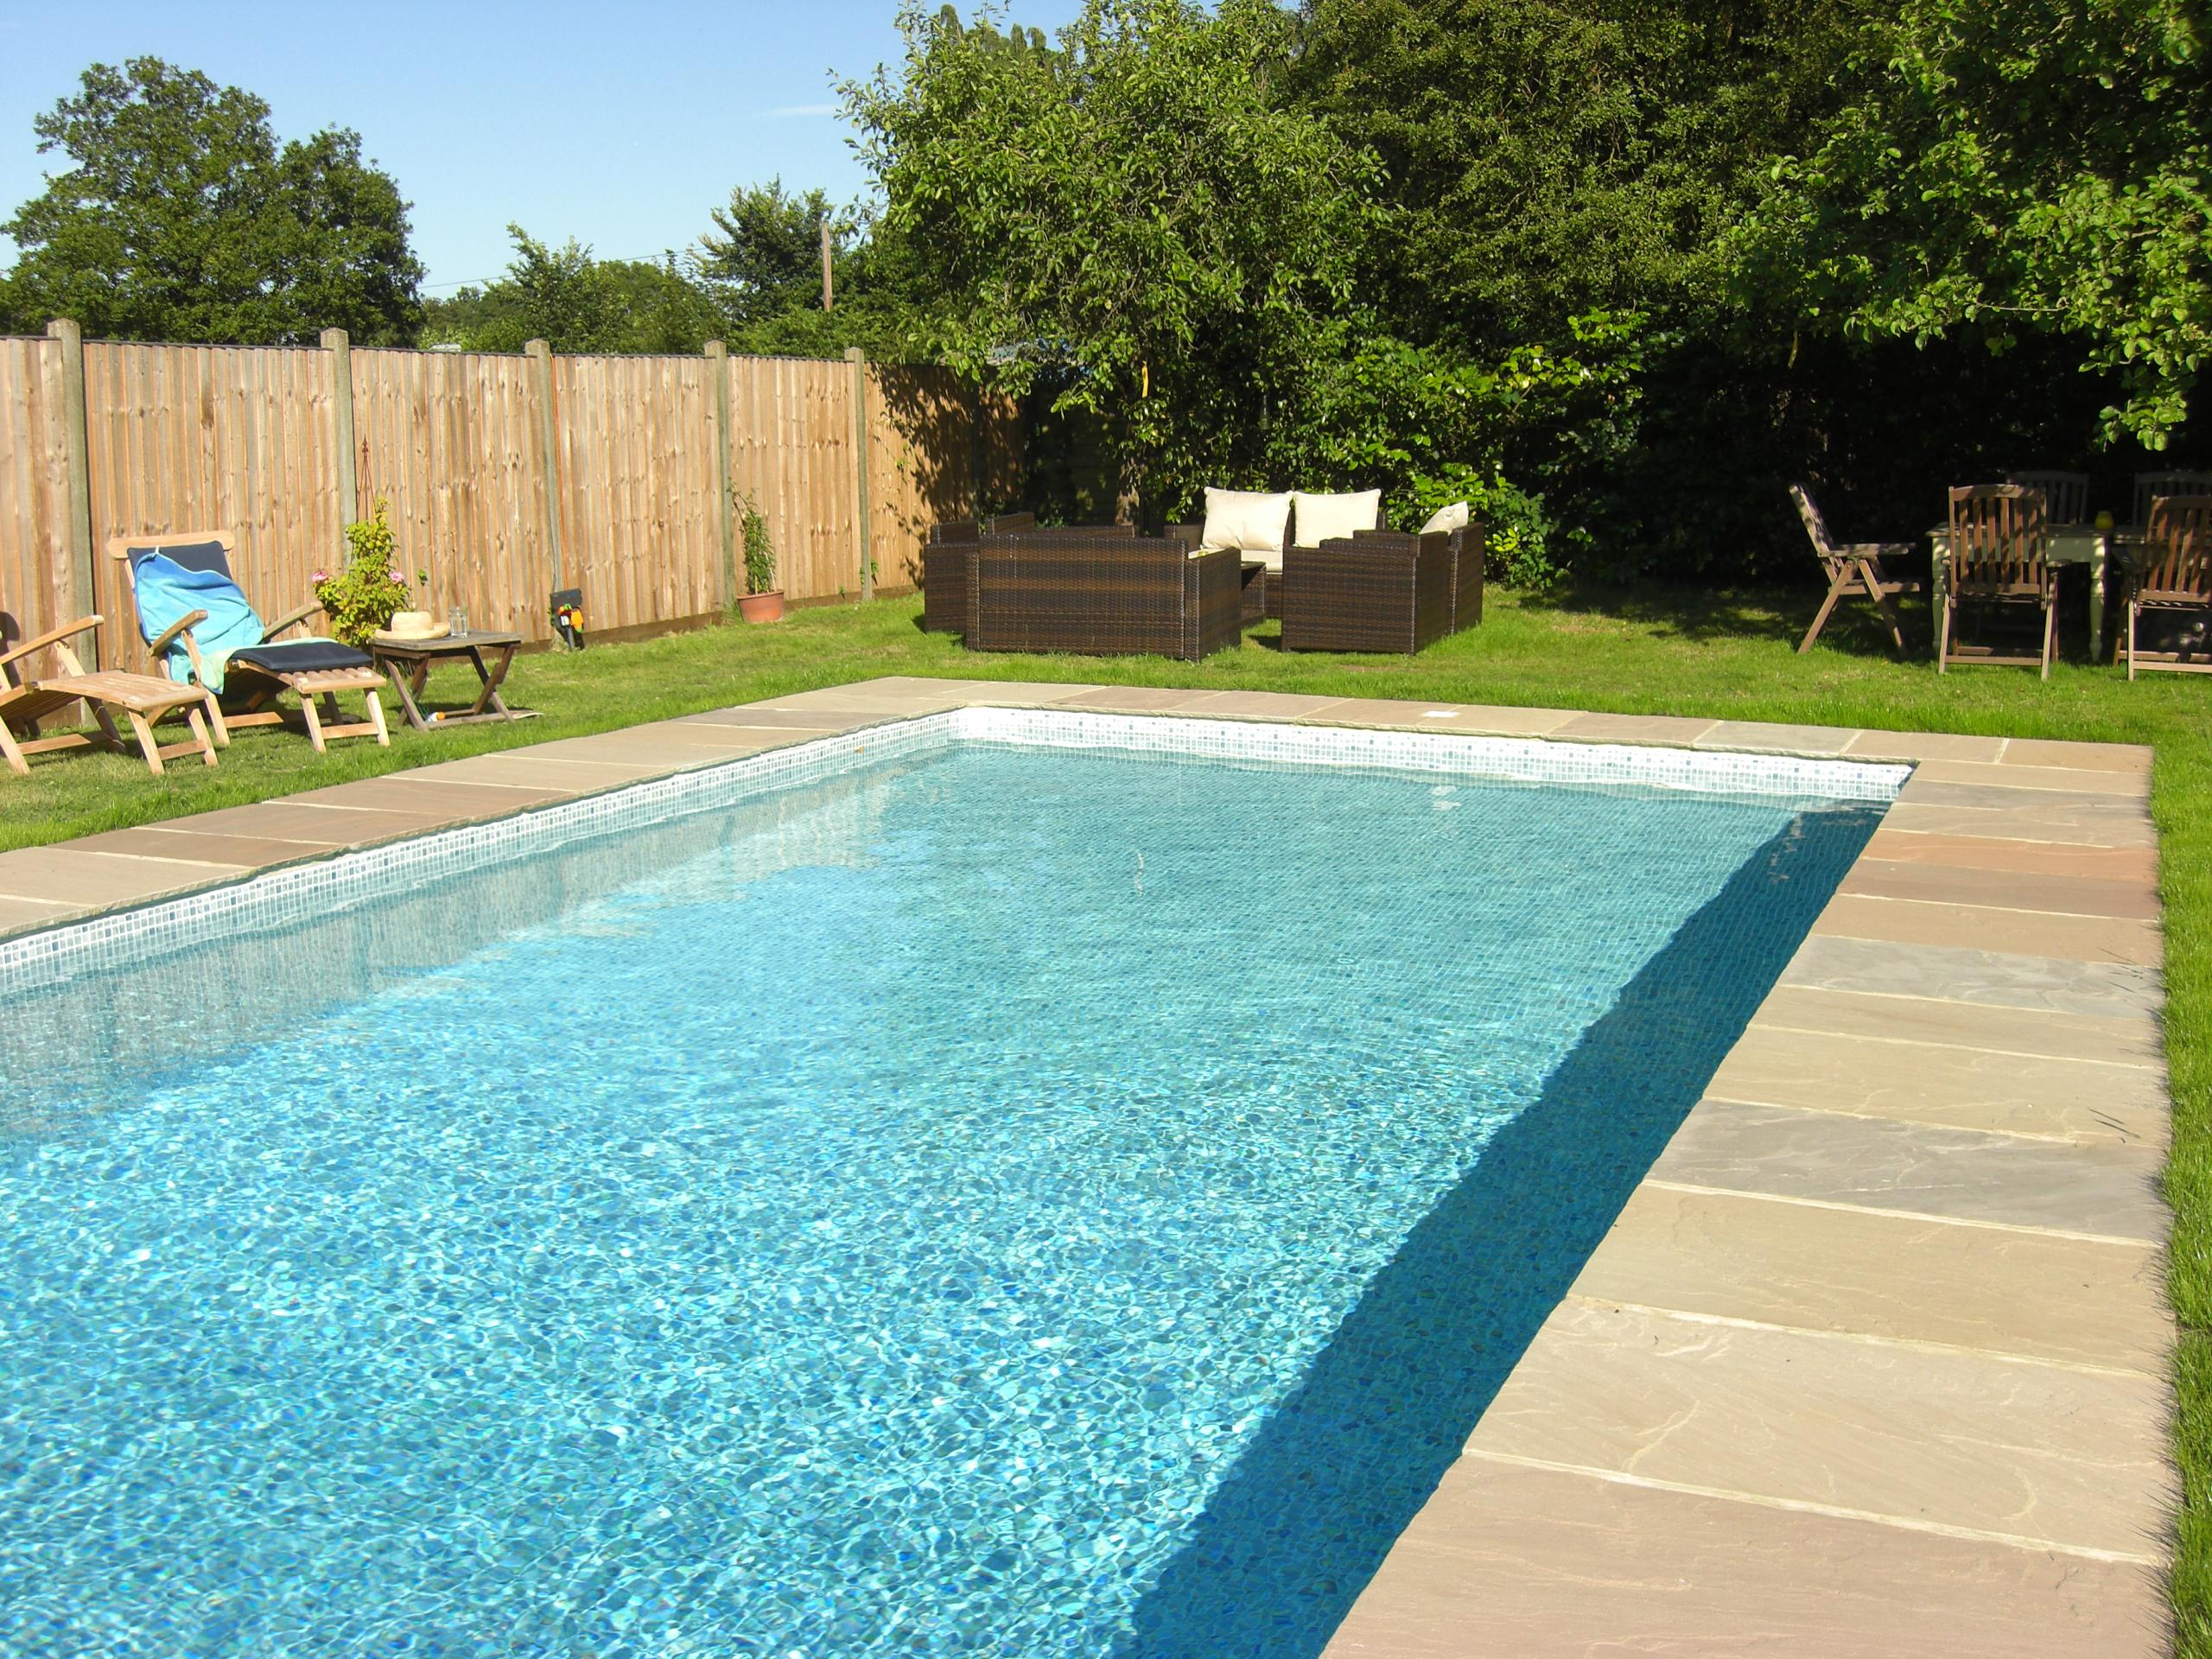 Pool liner installation ascot pools swimming pool for Pool installation